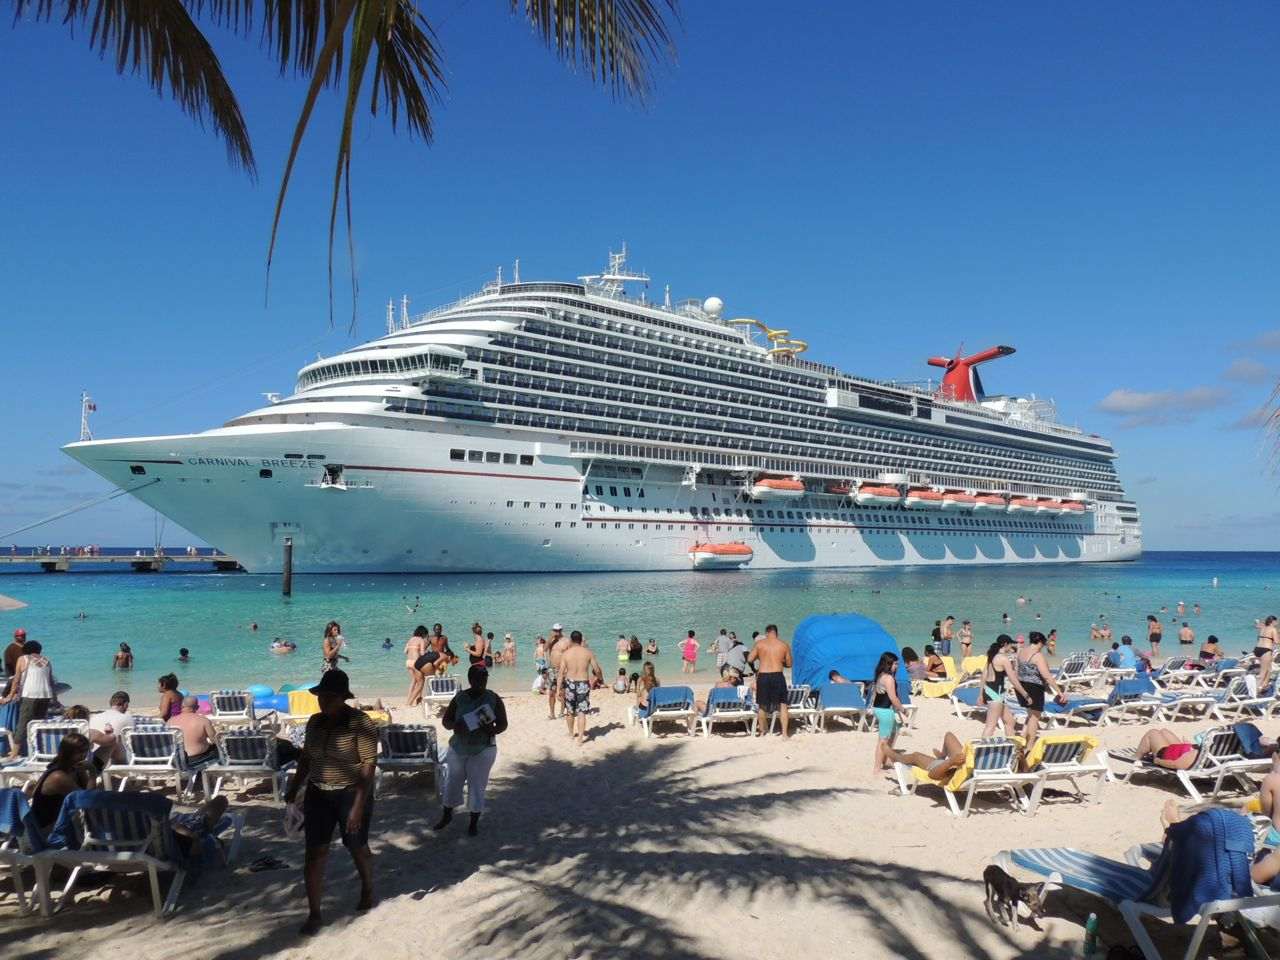 Carnival Breeze at Grand Turk